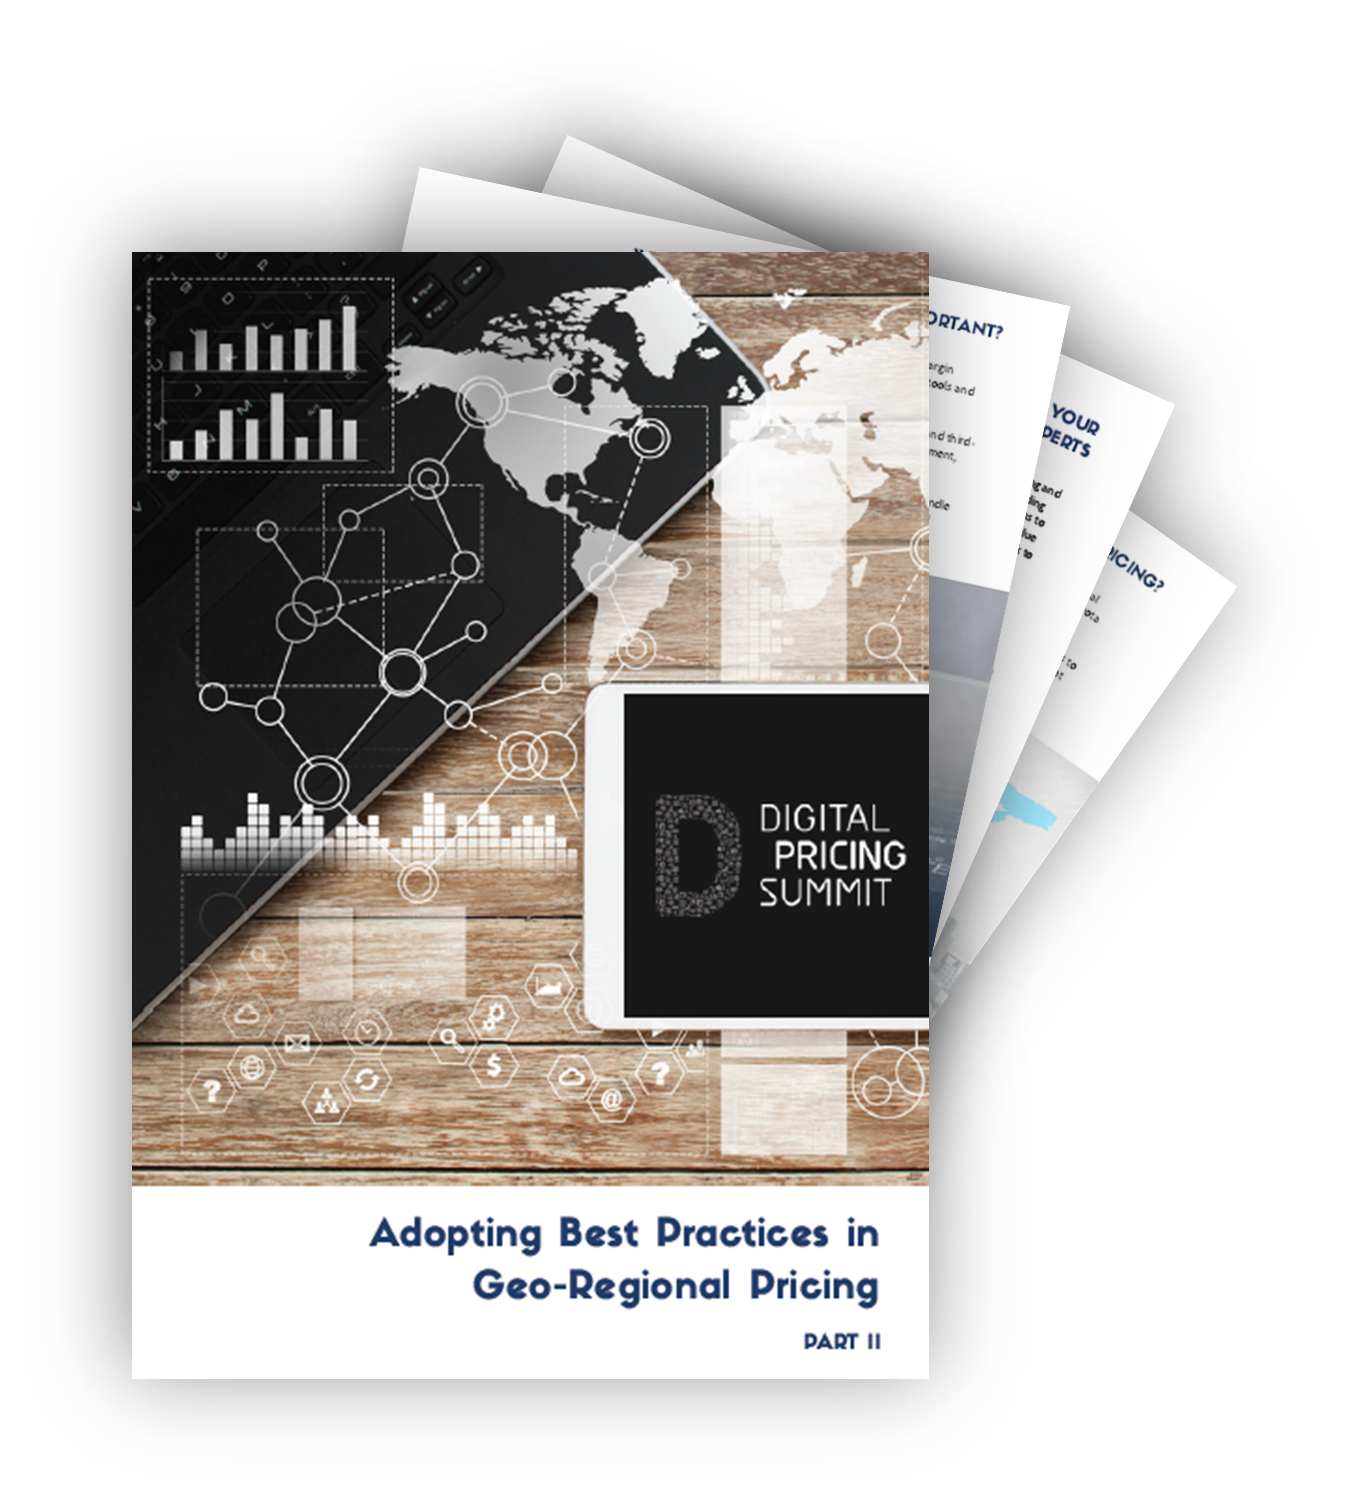 Adopting Best Practices in Geo-Regional Pricing